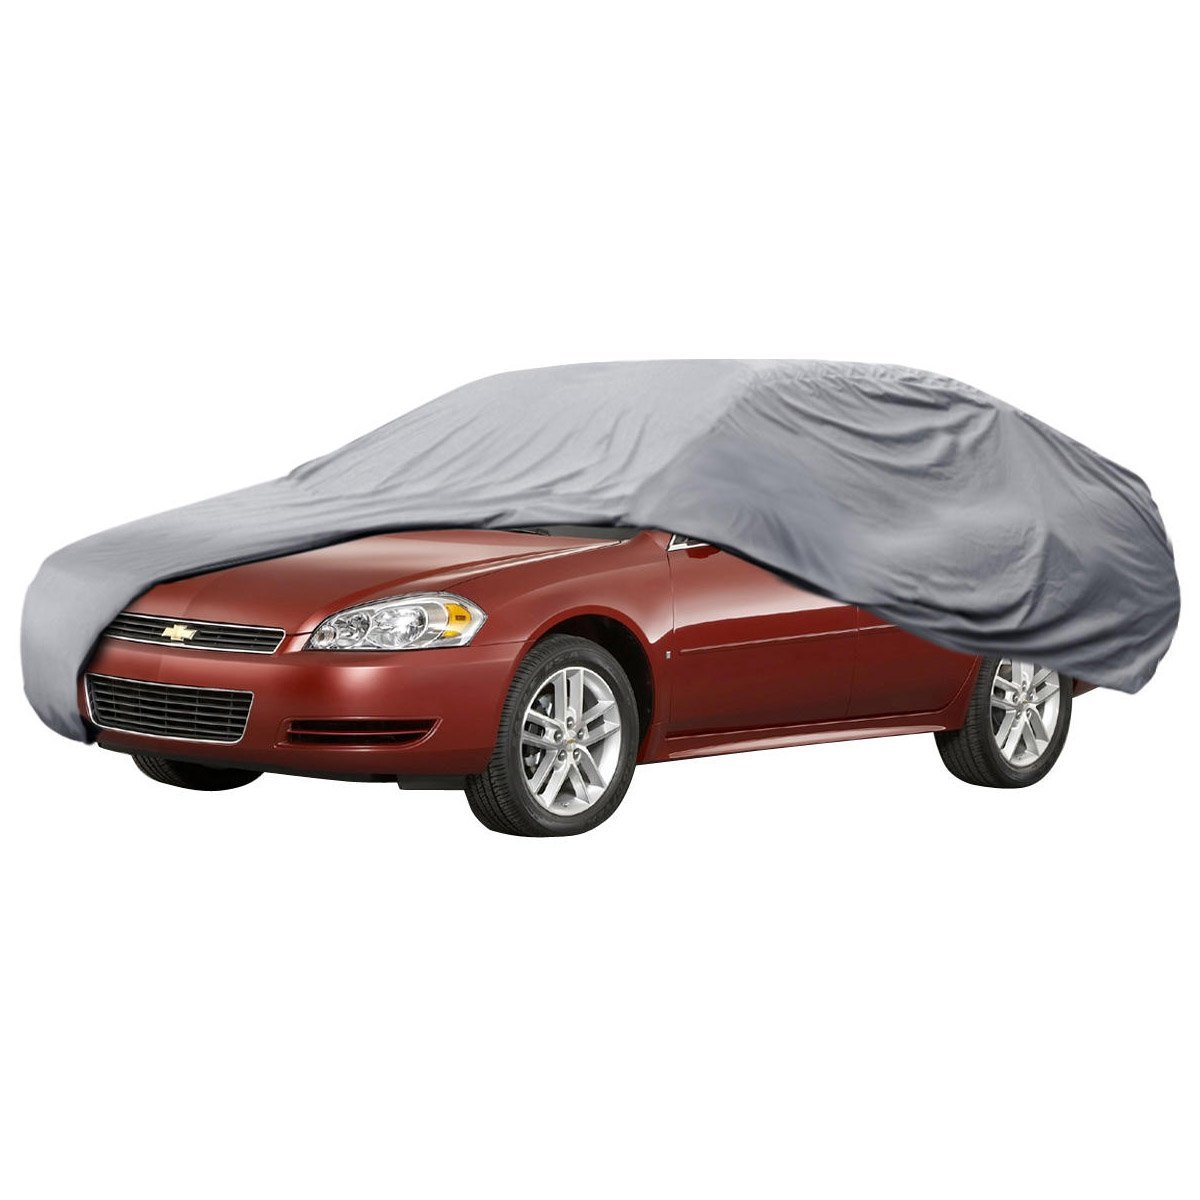 Car Cover for Chevrolet Impala 99-14 Outdoor Waterproof UV Block 4 Layers, USA, Brand BDK